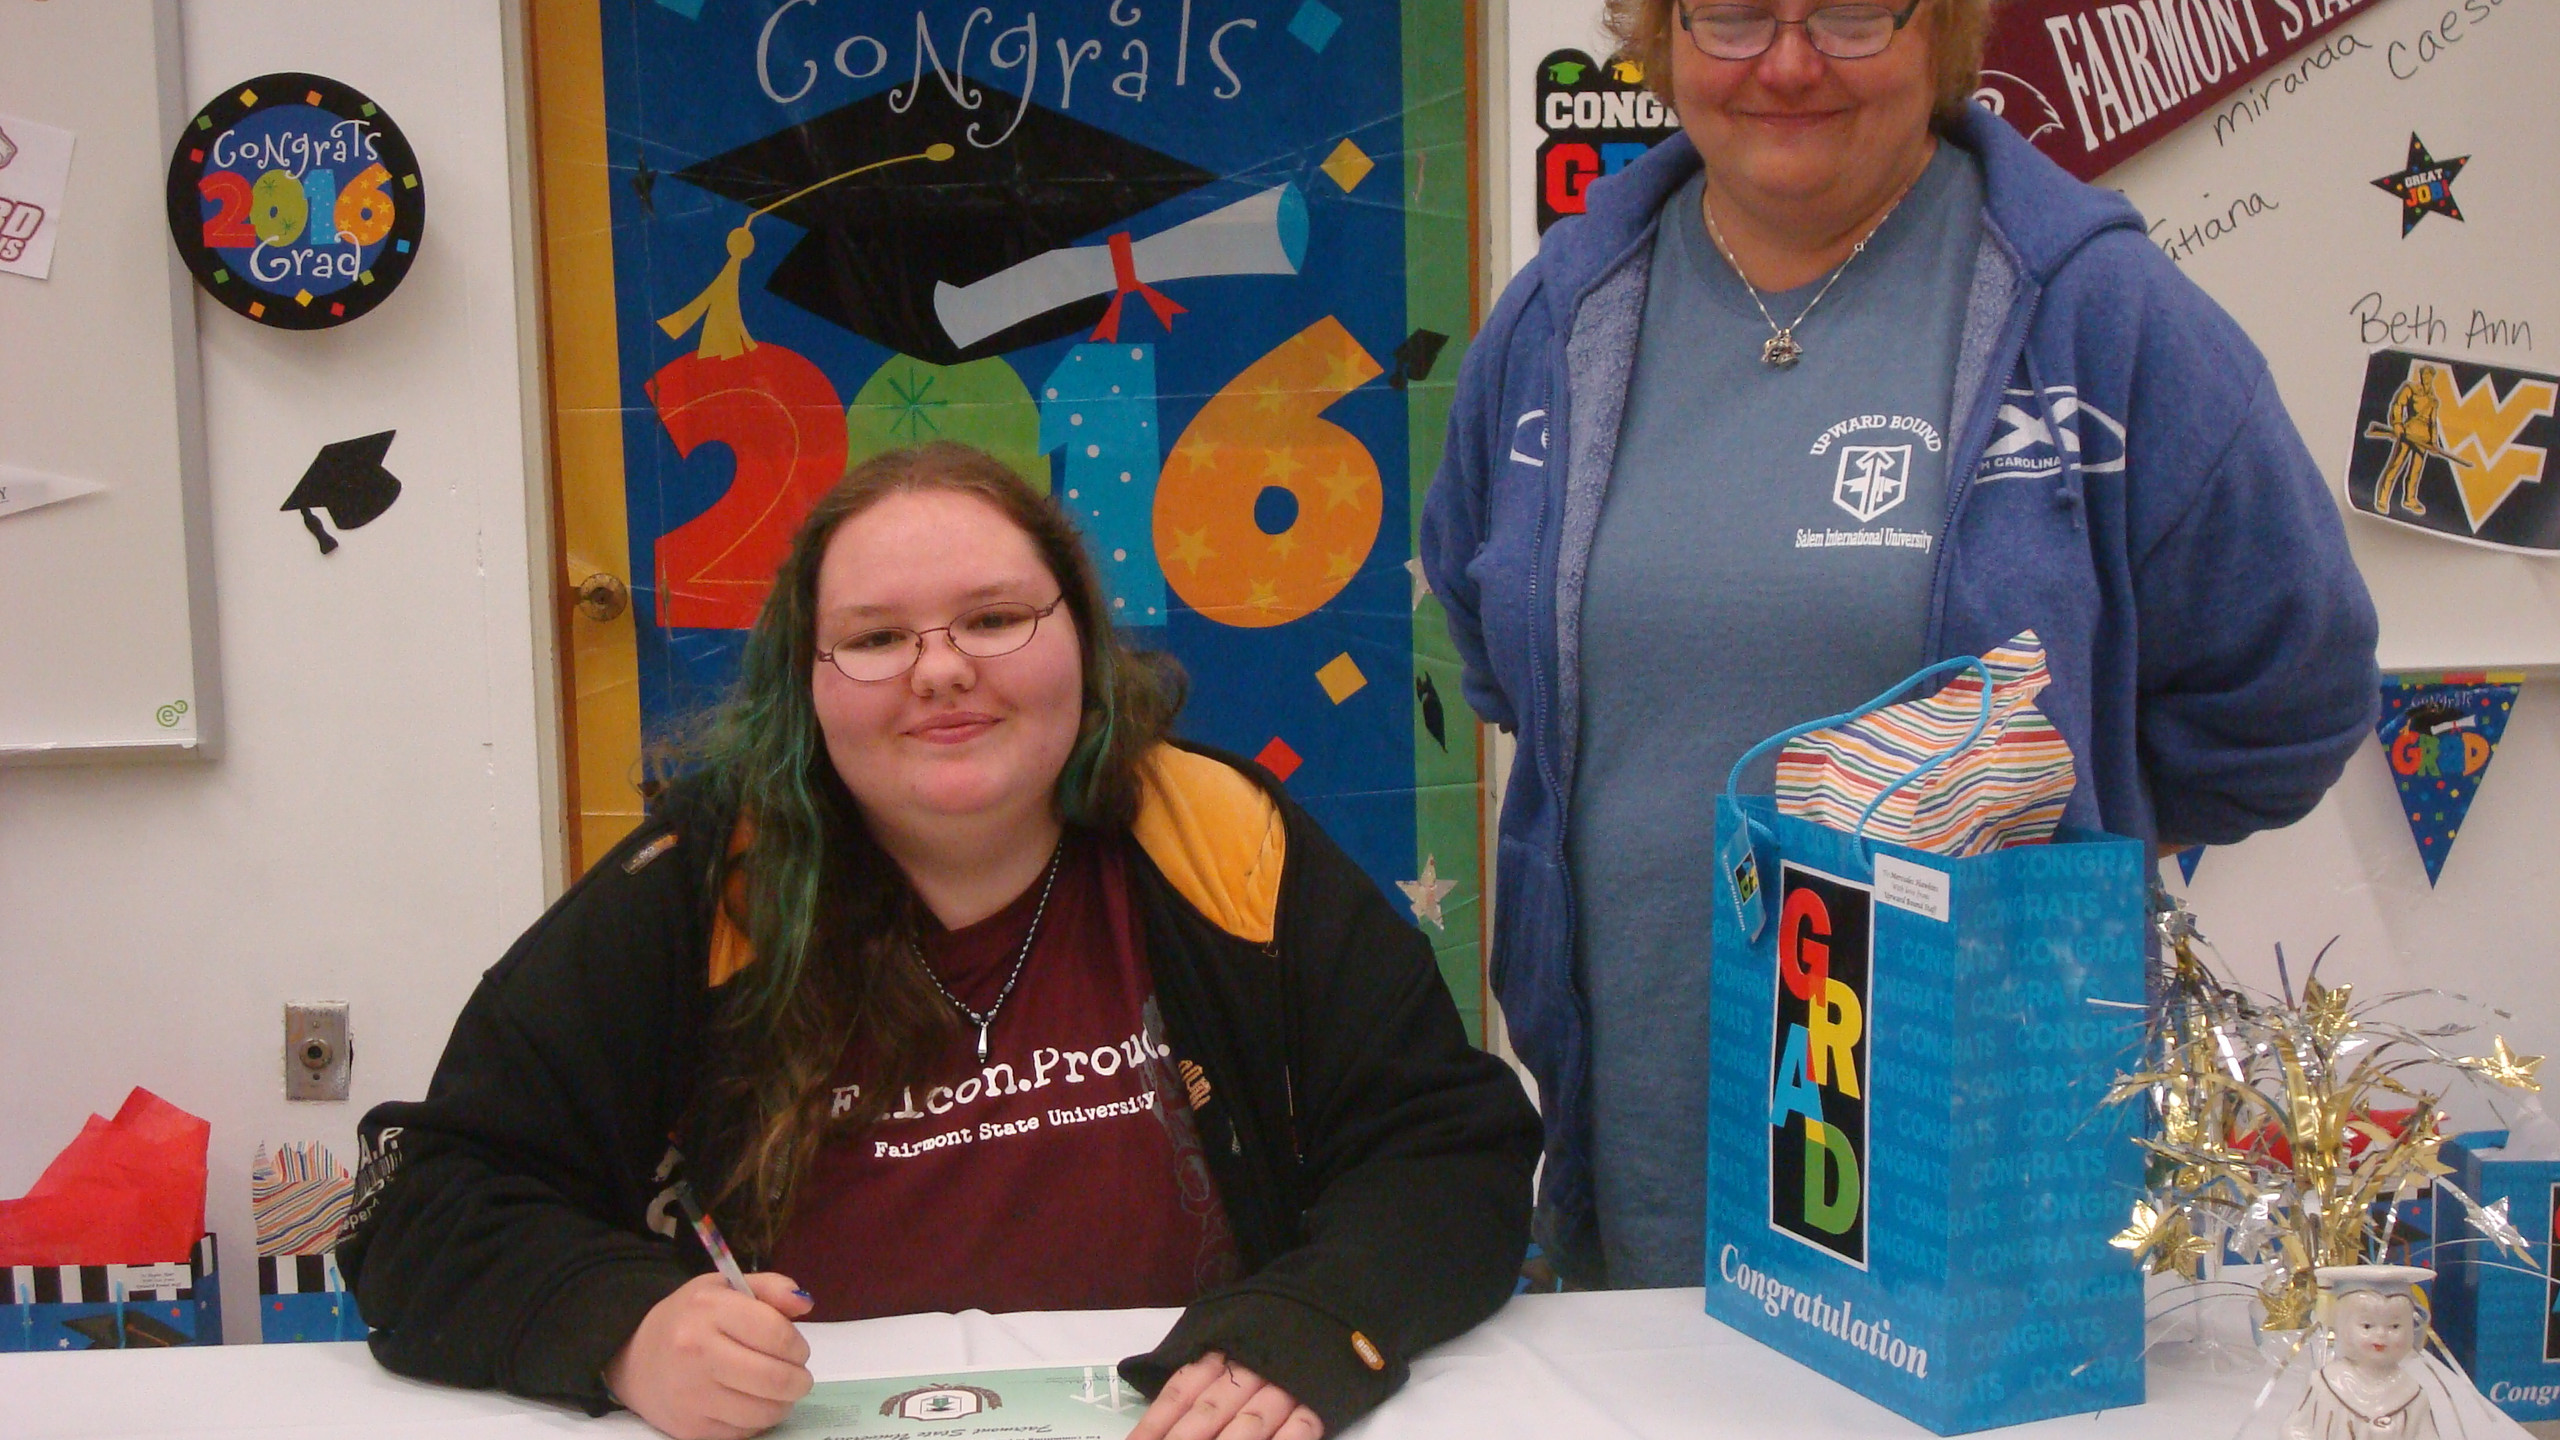 Mercedes will be attending Fairmont State University